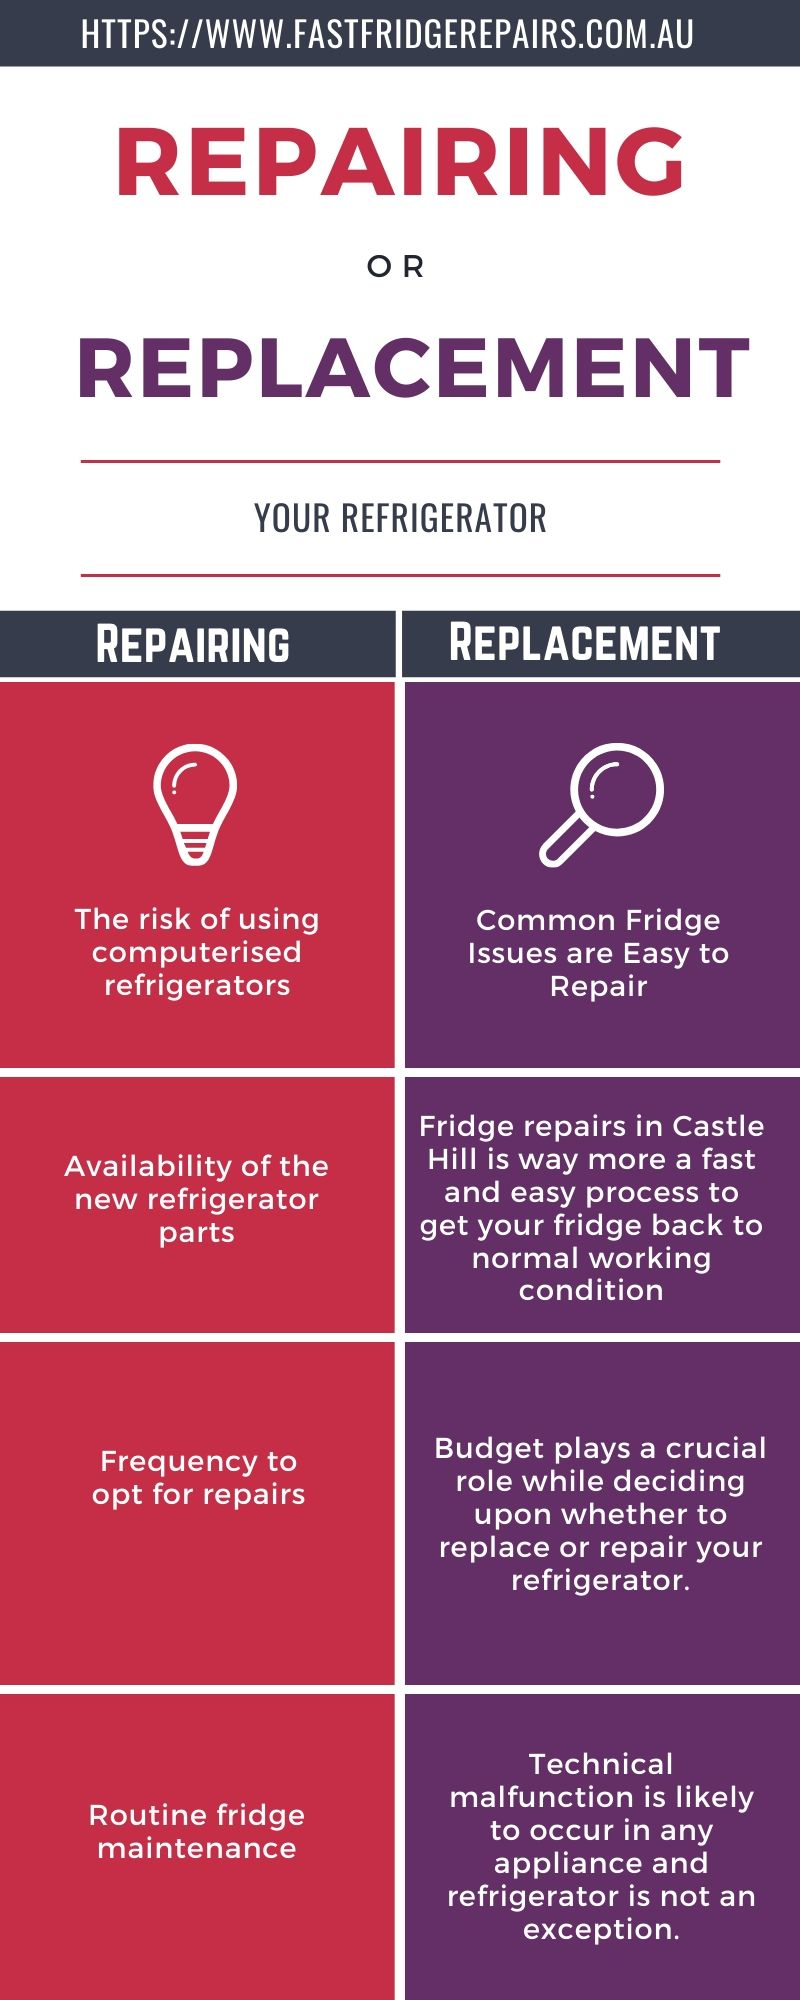 Factors to Consider While Thinking of Repairing or Replacing Your Refrigerator